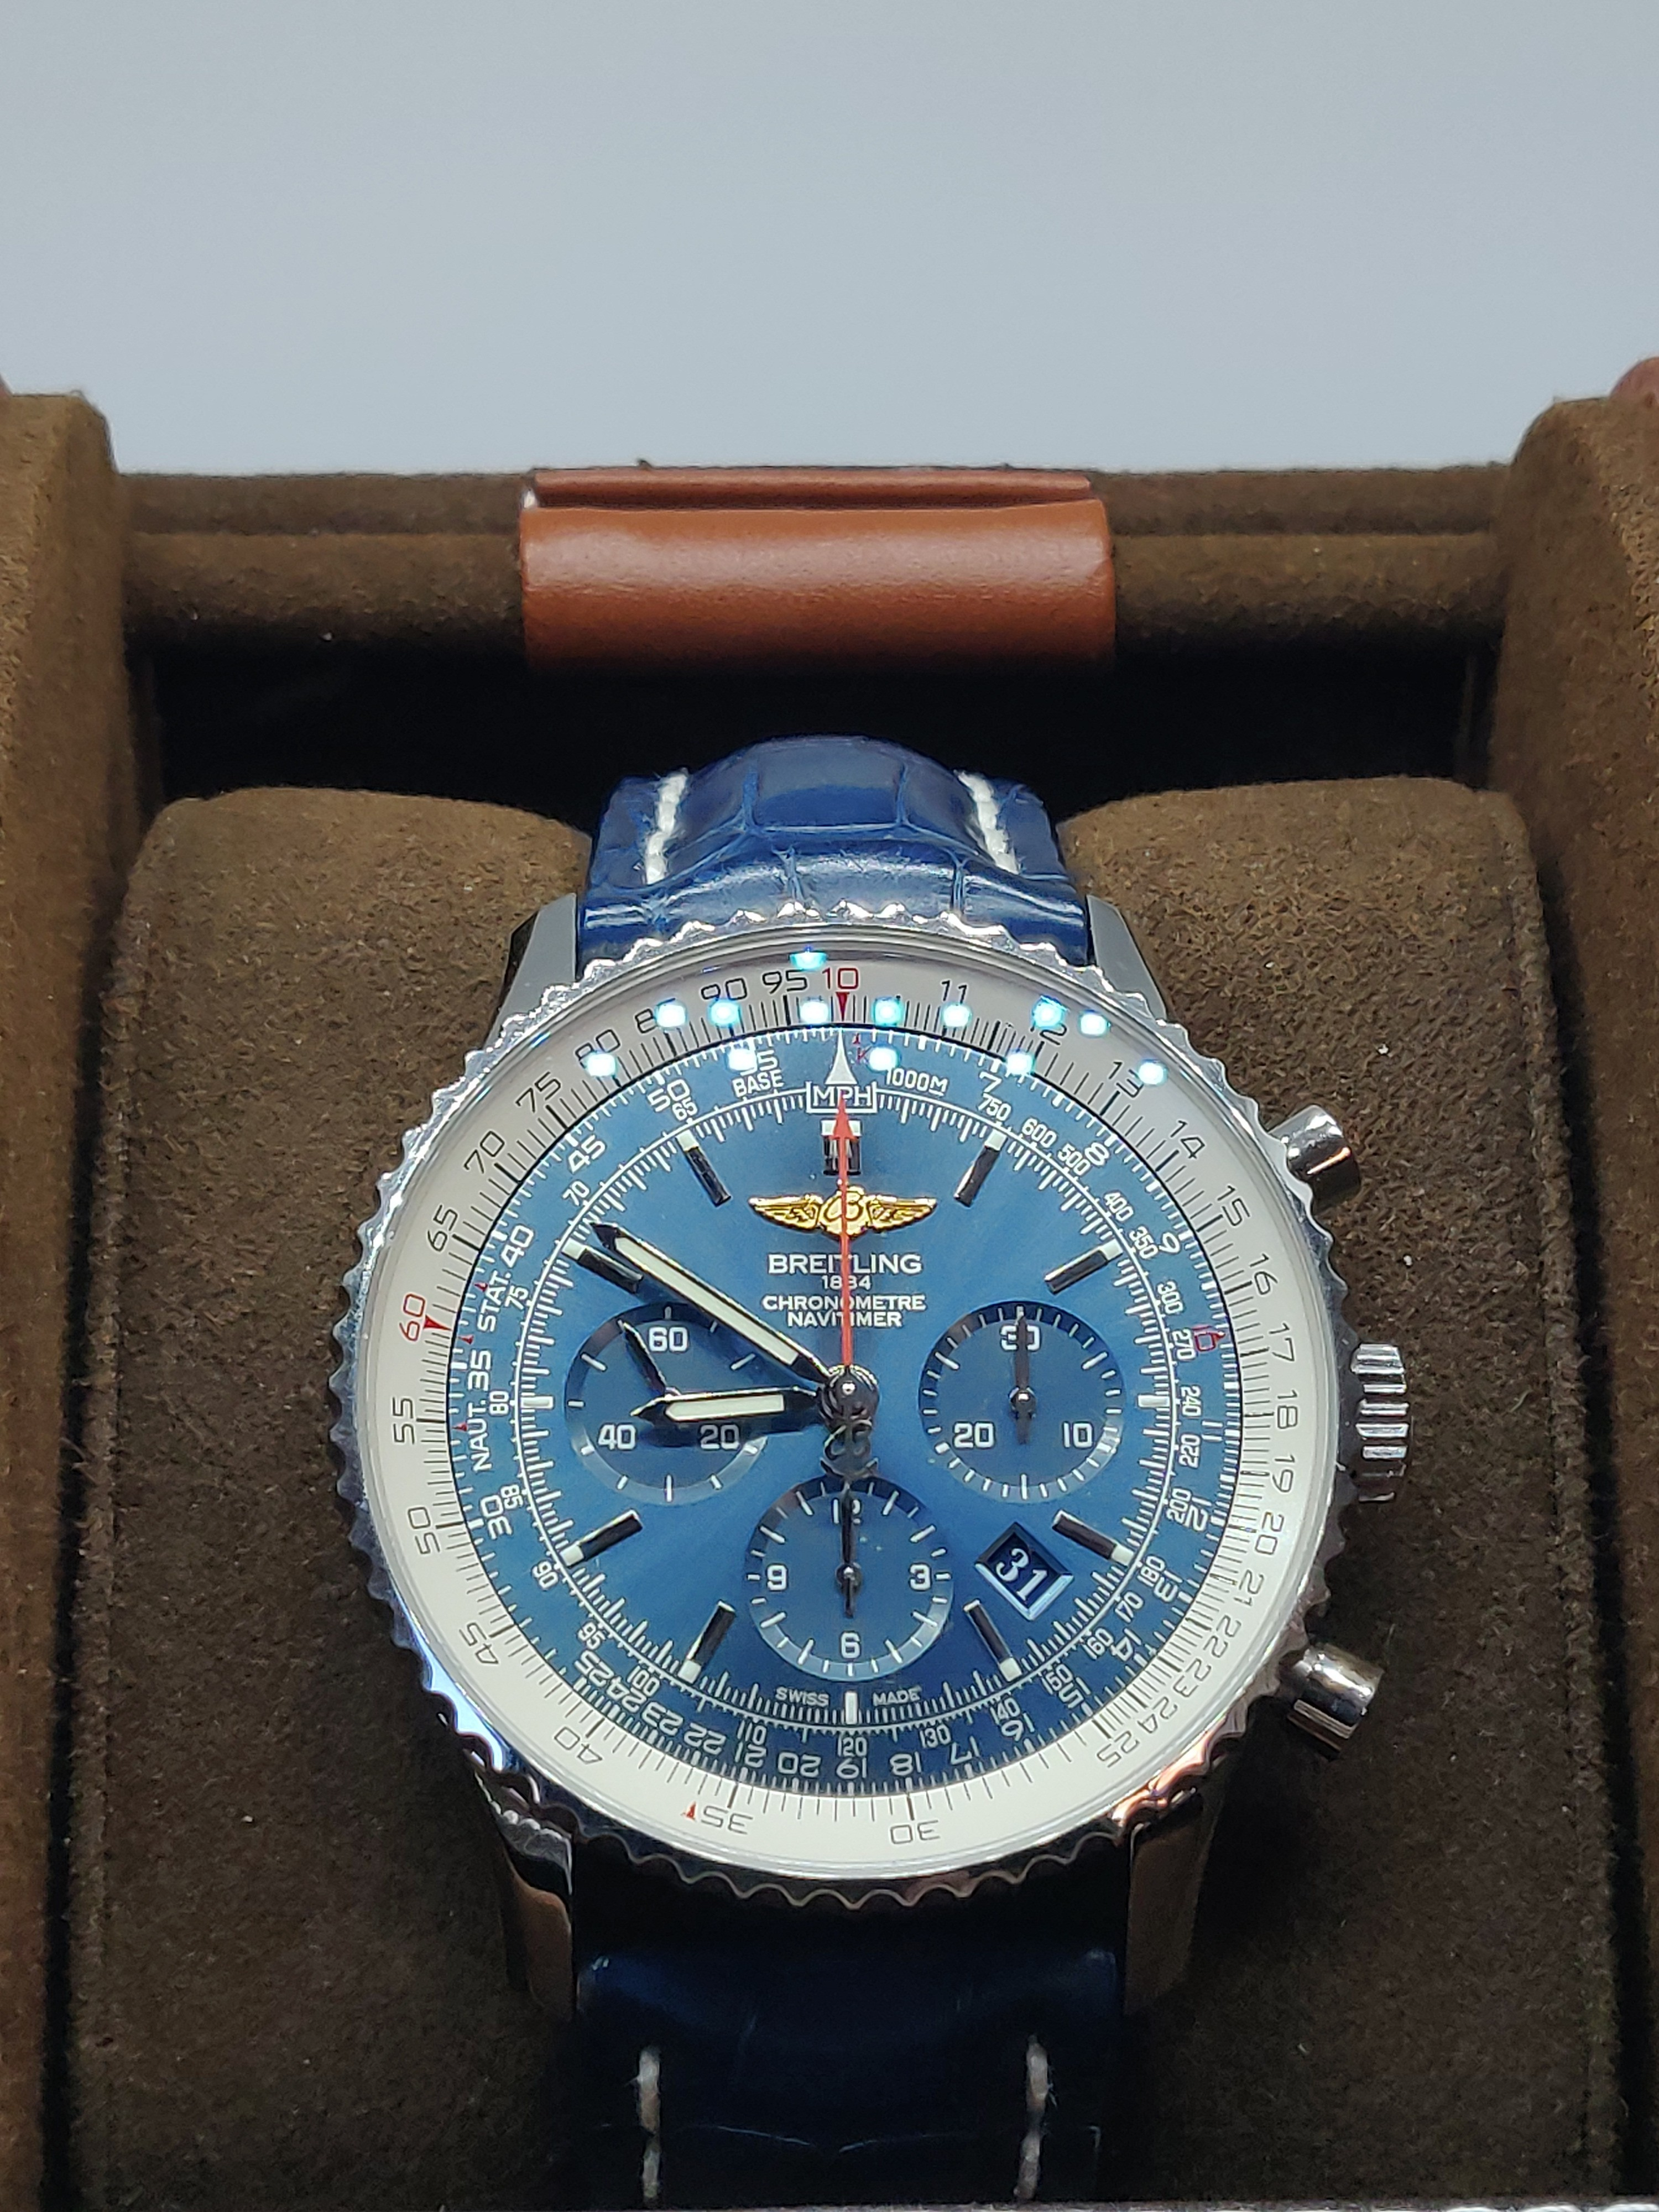 2017 Breitling Navitimer Strap Watch – AB012721/C889